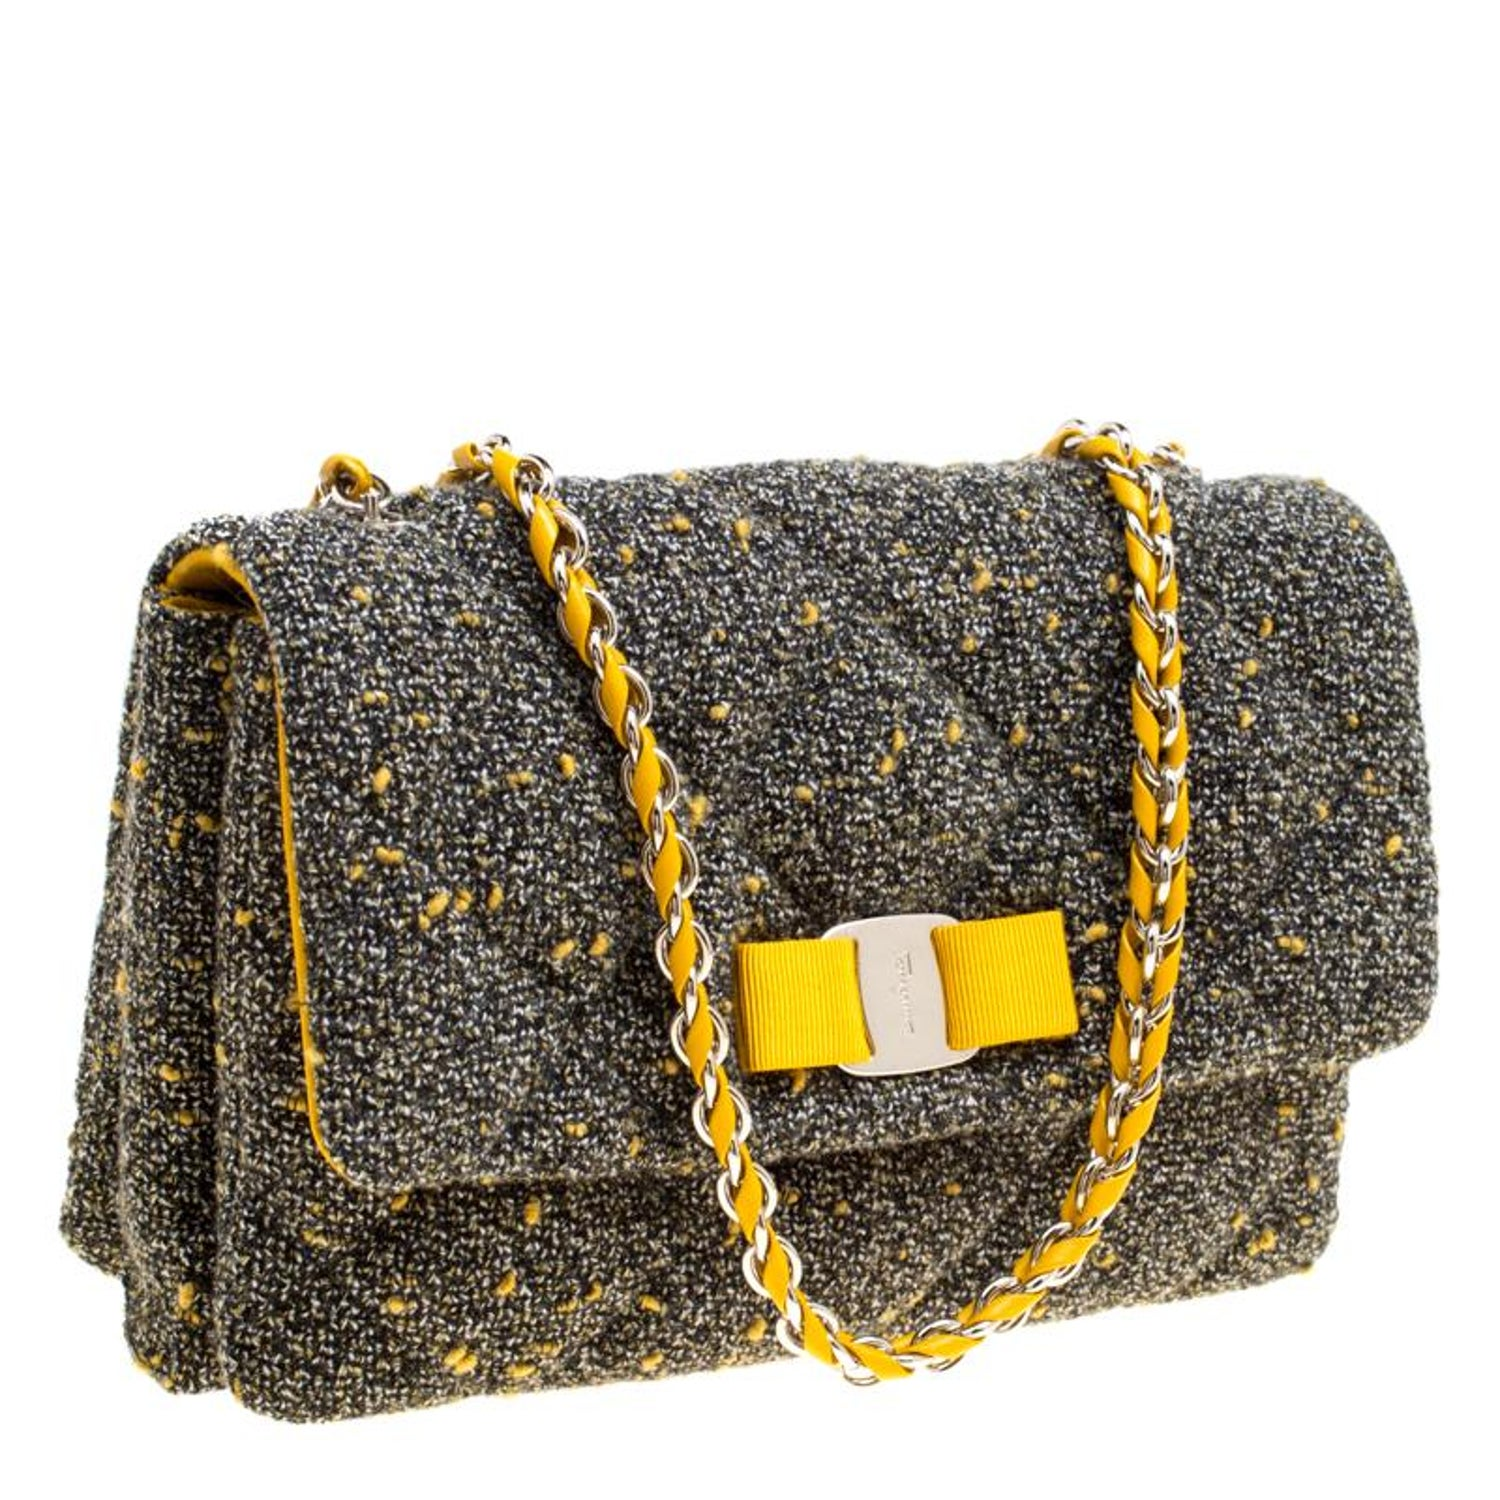 Salvatore Ferragamo Grey Quilted Tweed Gelly Shoulder Bag For Sale at  1stdibs 0d0a930334a5b